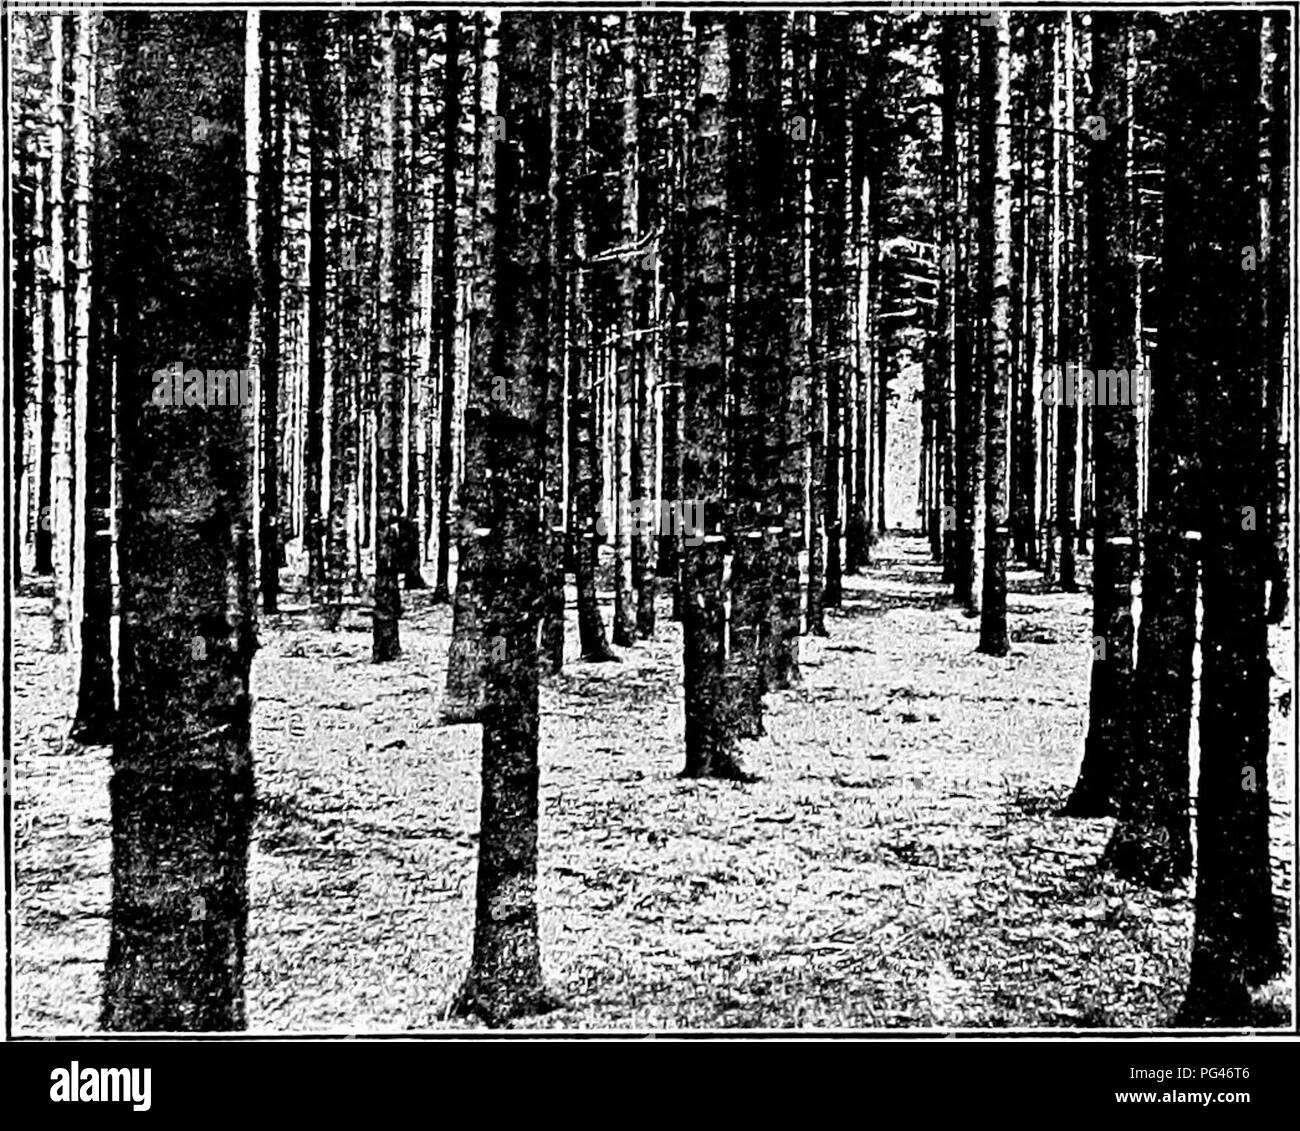 . Principles of American forestry . Forests and forestry. FOREST KECEKEKATION AND TREATMENT. 69 and Willow cuttings may also be used in the same way or with l.)eans. Natural Reseeding of the land is almost the only practi- cal mean^ of restocking cheap forest land, as other methods are too expensive. It generally takes place readily, and the onljr reason why it is not more successful is the fre- quent destruction of the young seedlings by fires and cattle. The small crooked branching Pine and other. Fig. 1.3.—A fine young growth of Norway Spruce (Picea excelsa) in the forest garden of the &quo - Stock Image